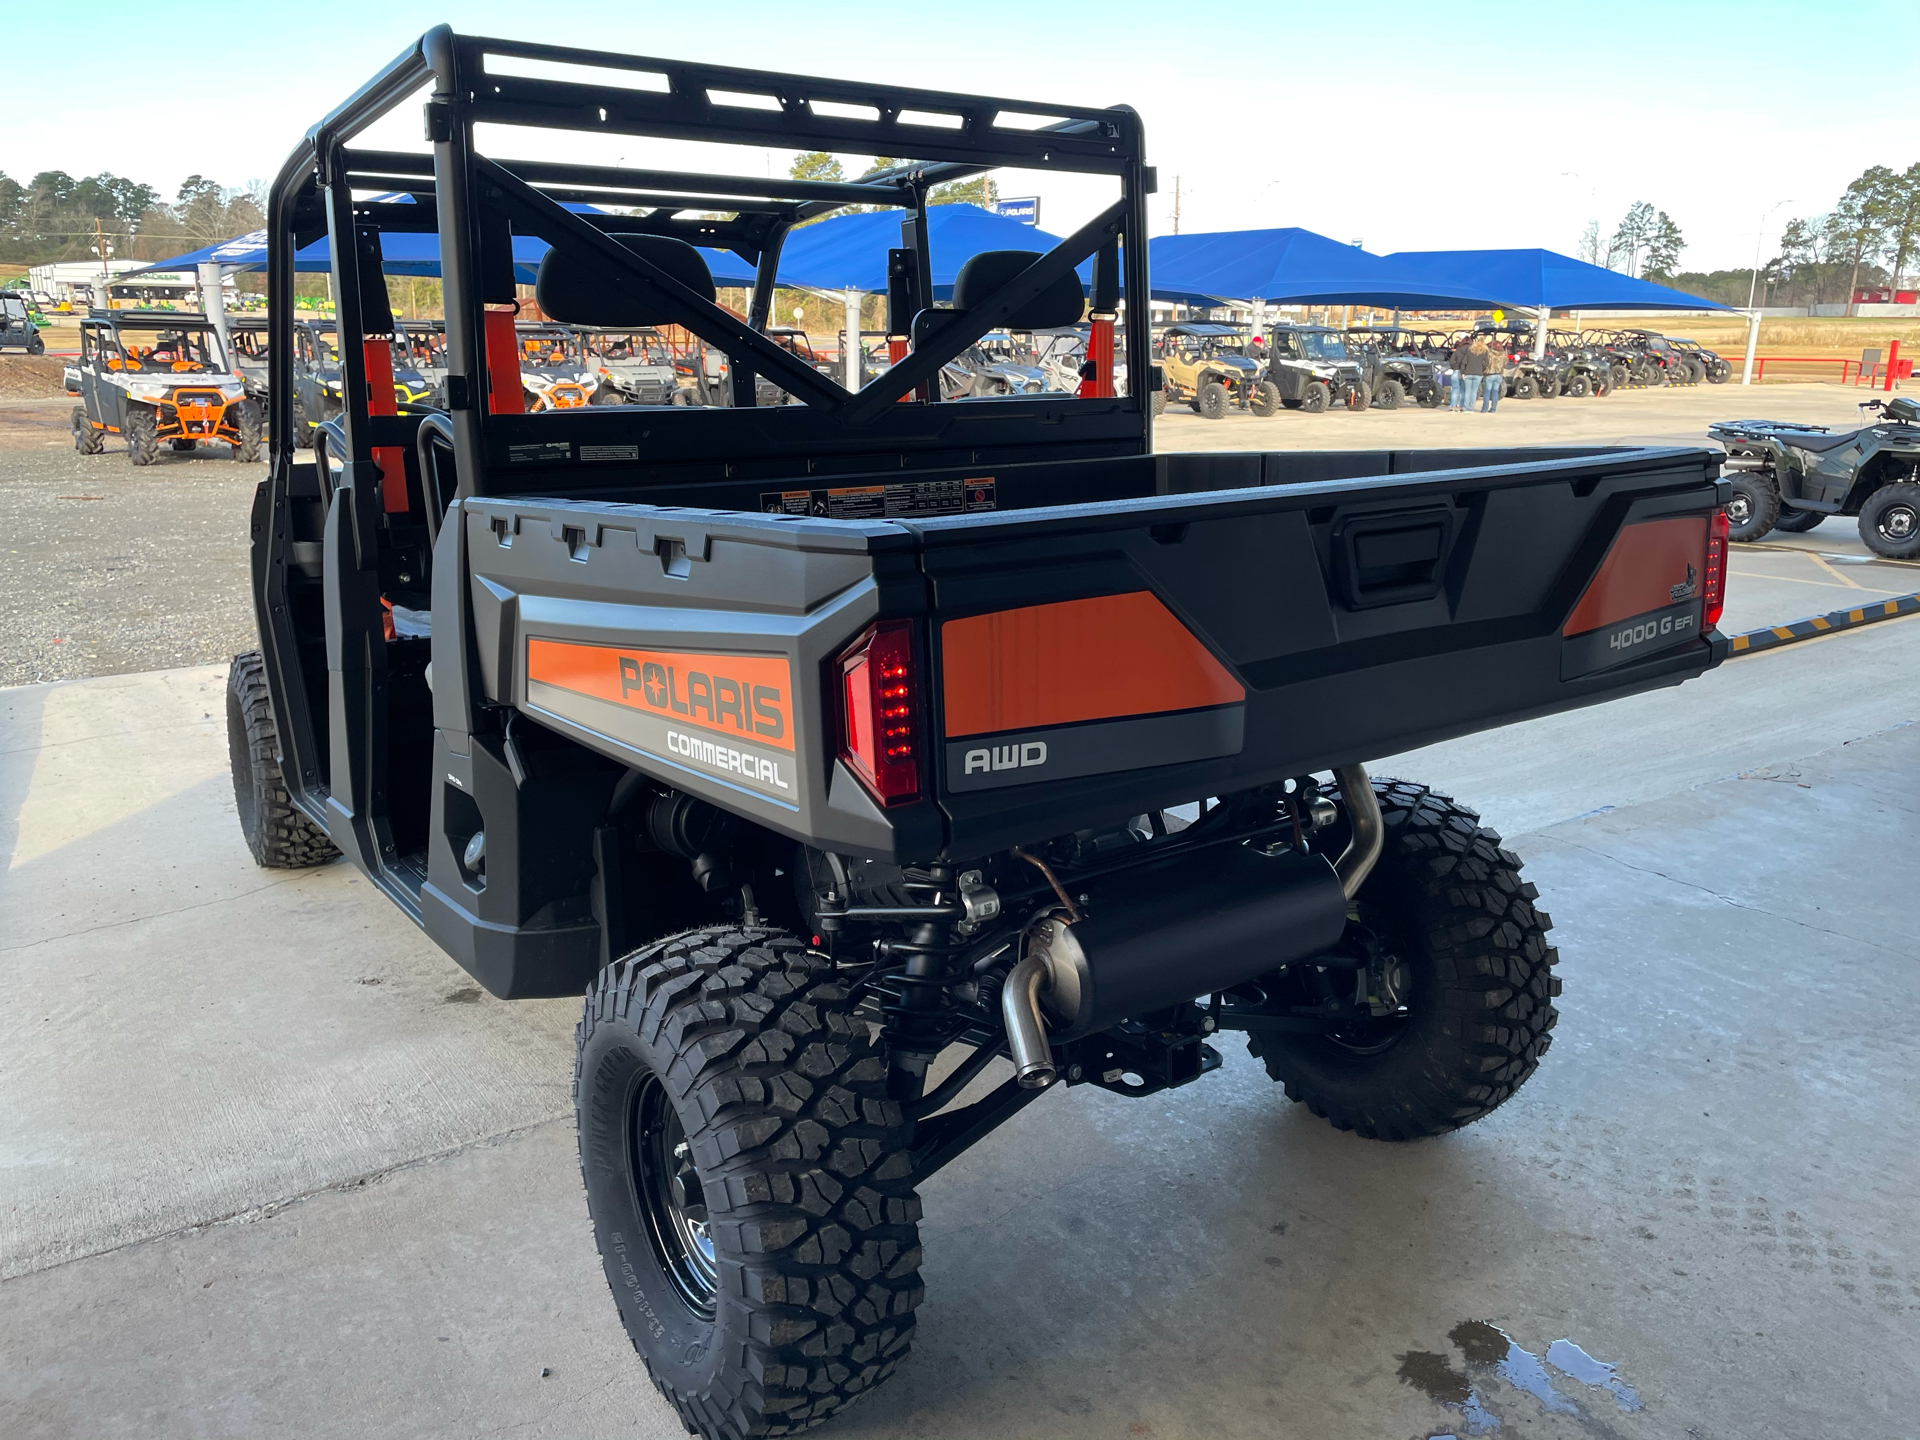 2020 Polaris PRO XD 4000G AWD in Marshall, Texas - Photo 5